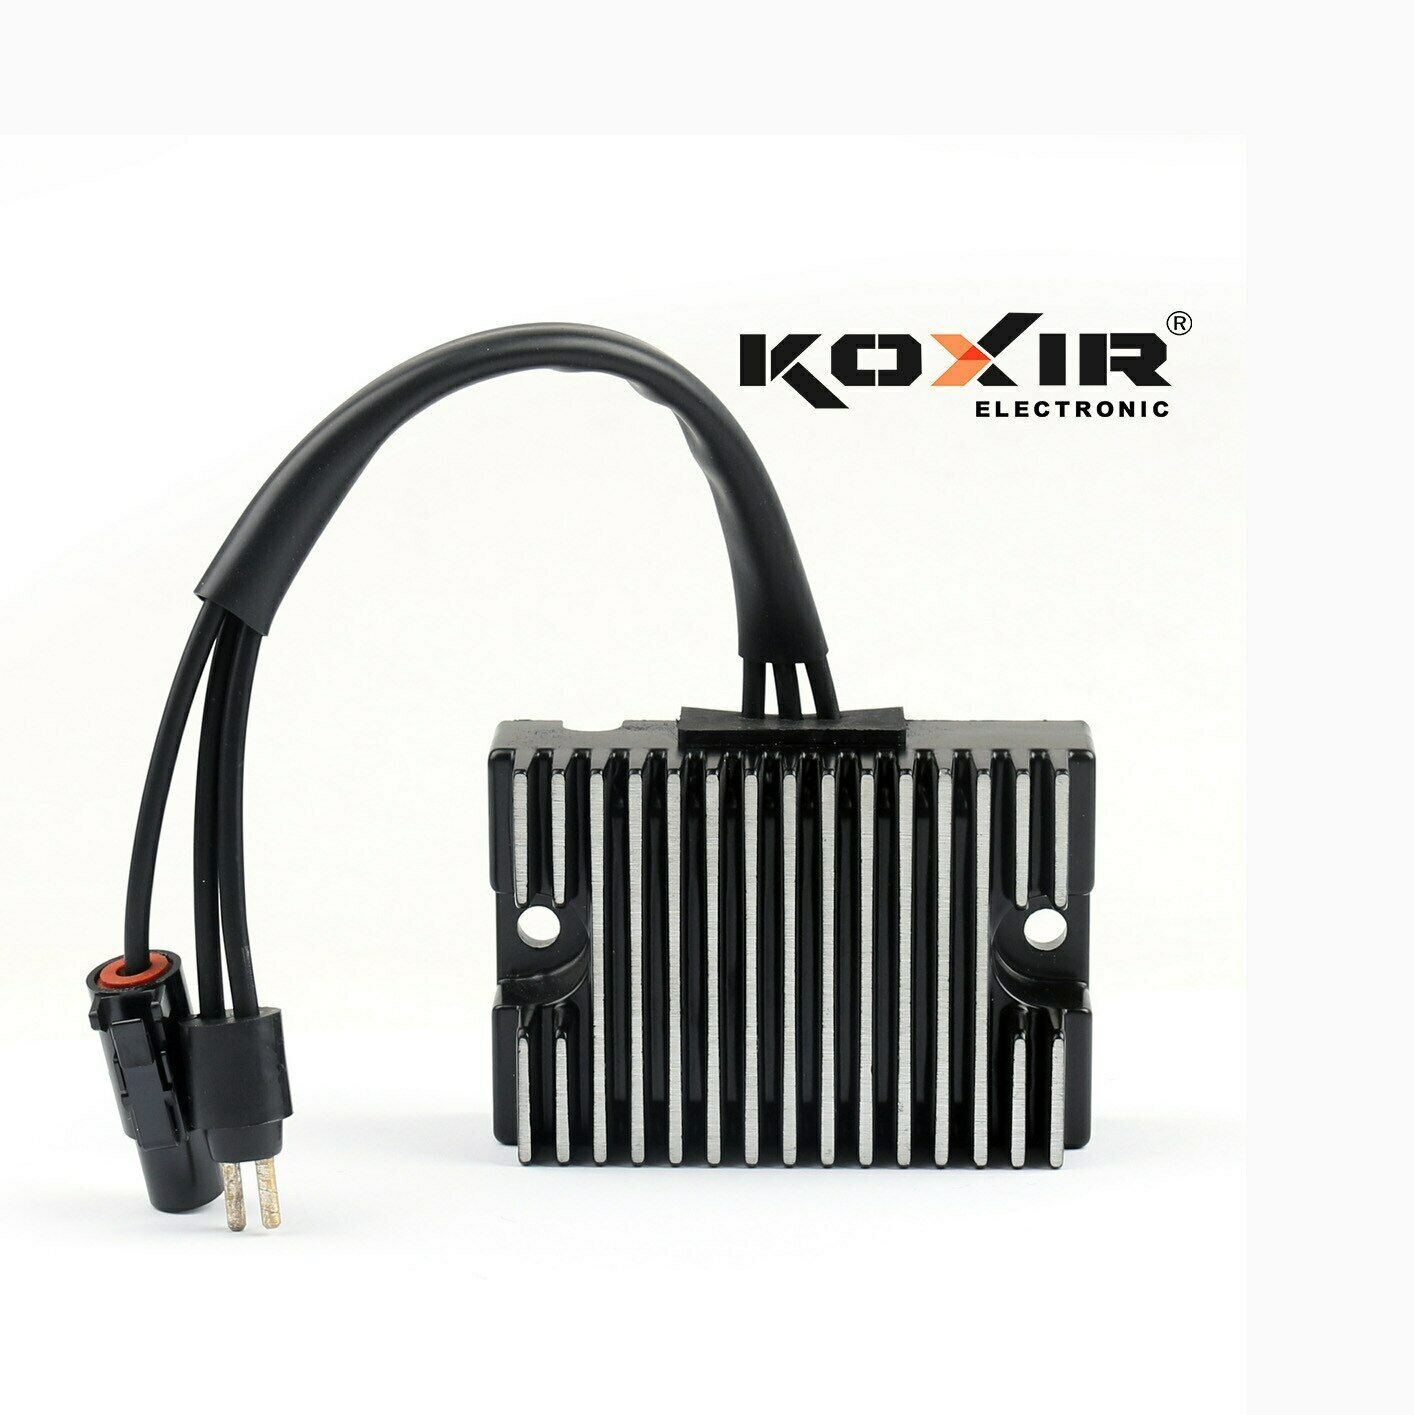 Mosfet Motorcycle Voltage Rectfier Regulator Dc For Harley XLH1200 883 74523-94A